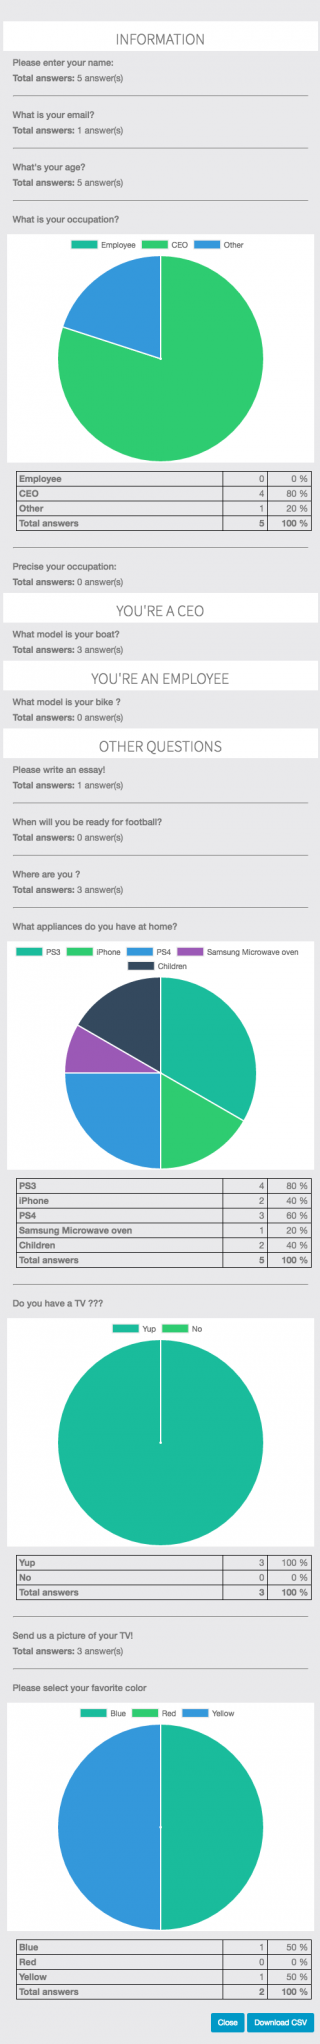 surveys_results